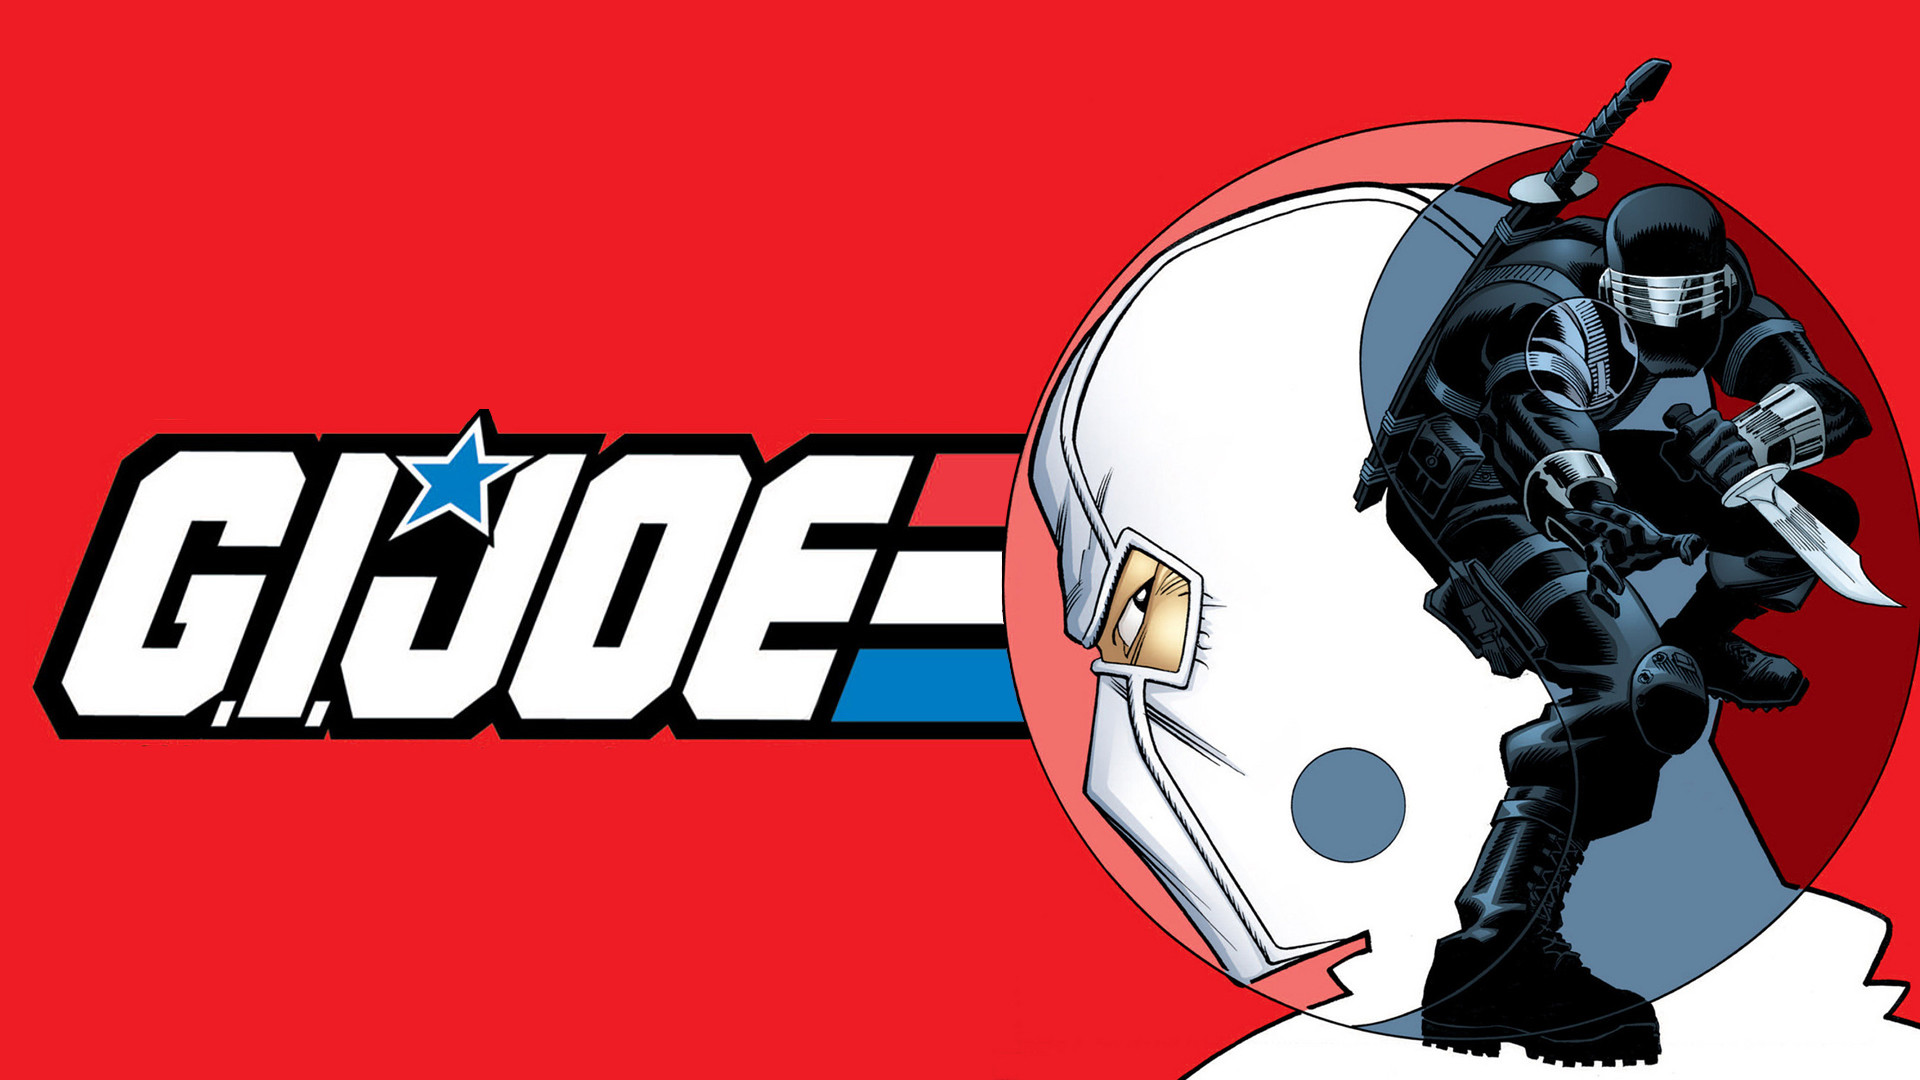 1920x1080 Comics - G.I. Joe: A Real American Hero Snake Eyes (G.I. Joe) Wallpaper